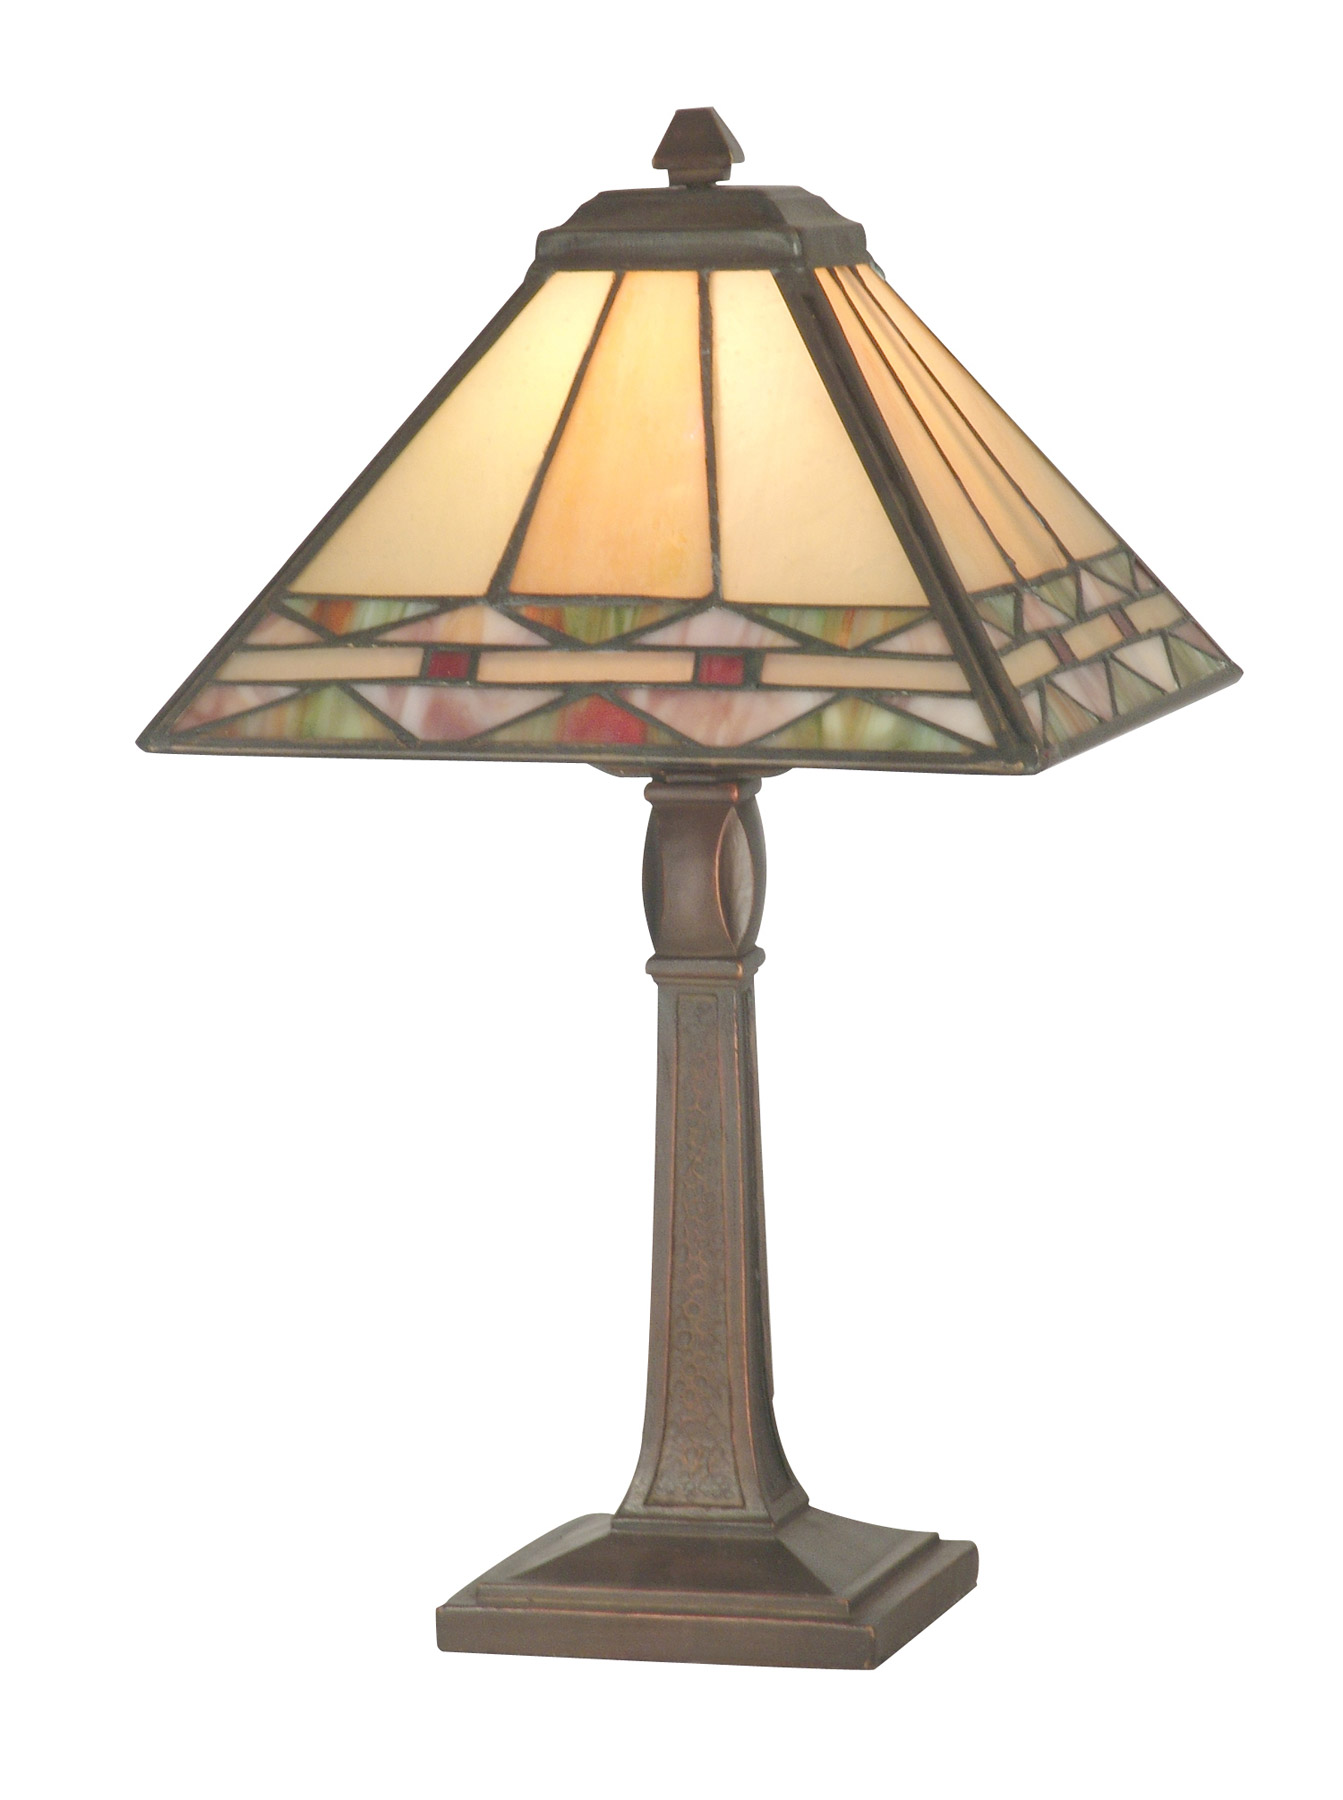 Dale Tiffany Ta70678 Craftsman Slayter Miniature Accent Lamp